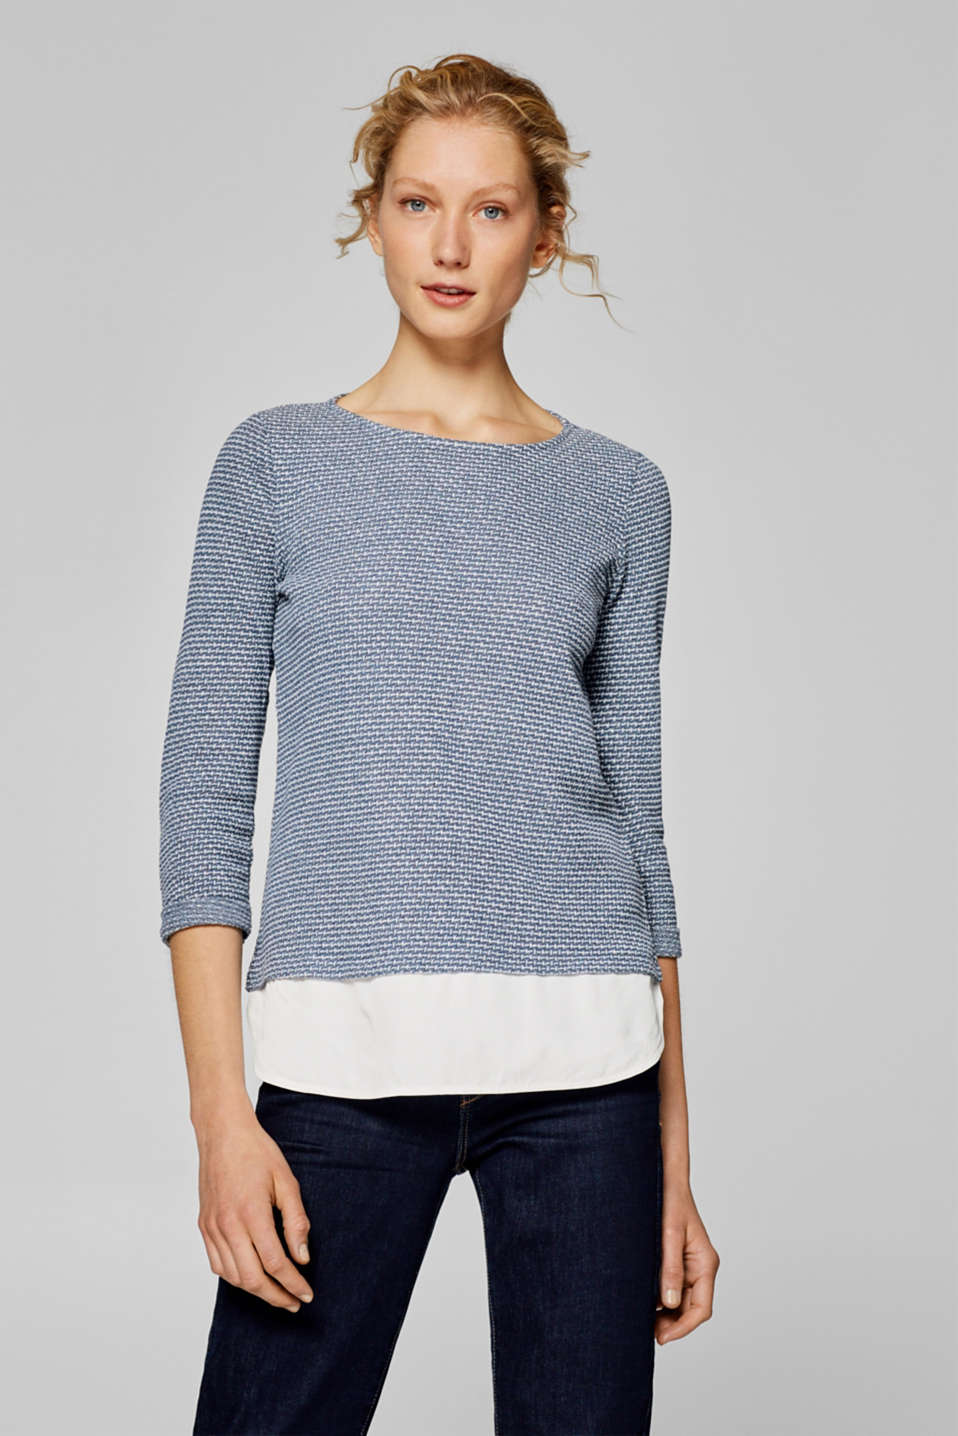 Esprit - Layered sweatshirt, recycled